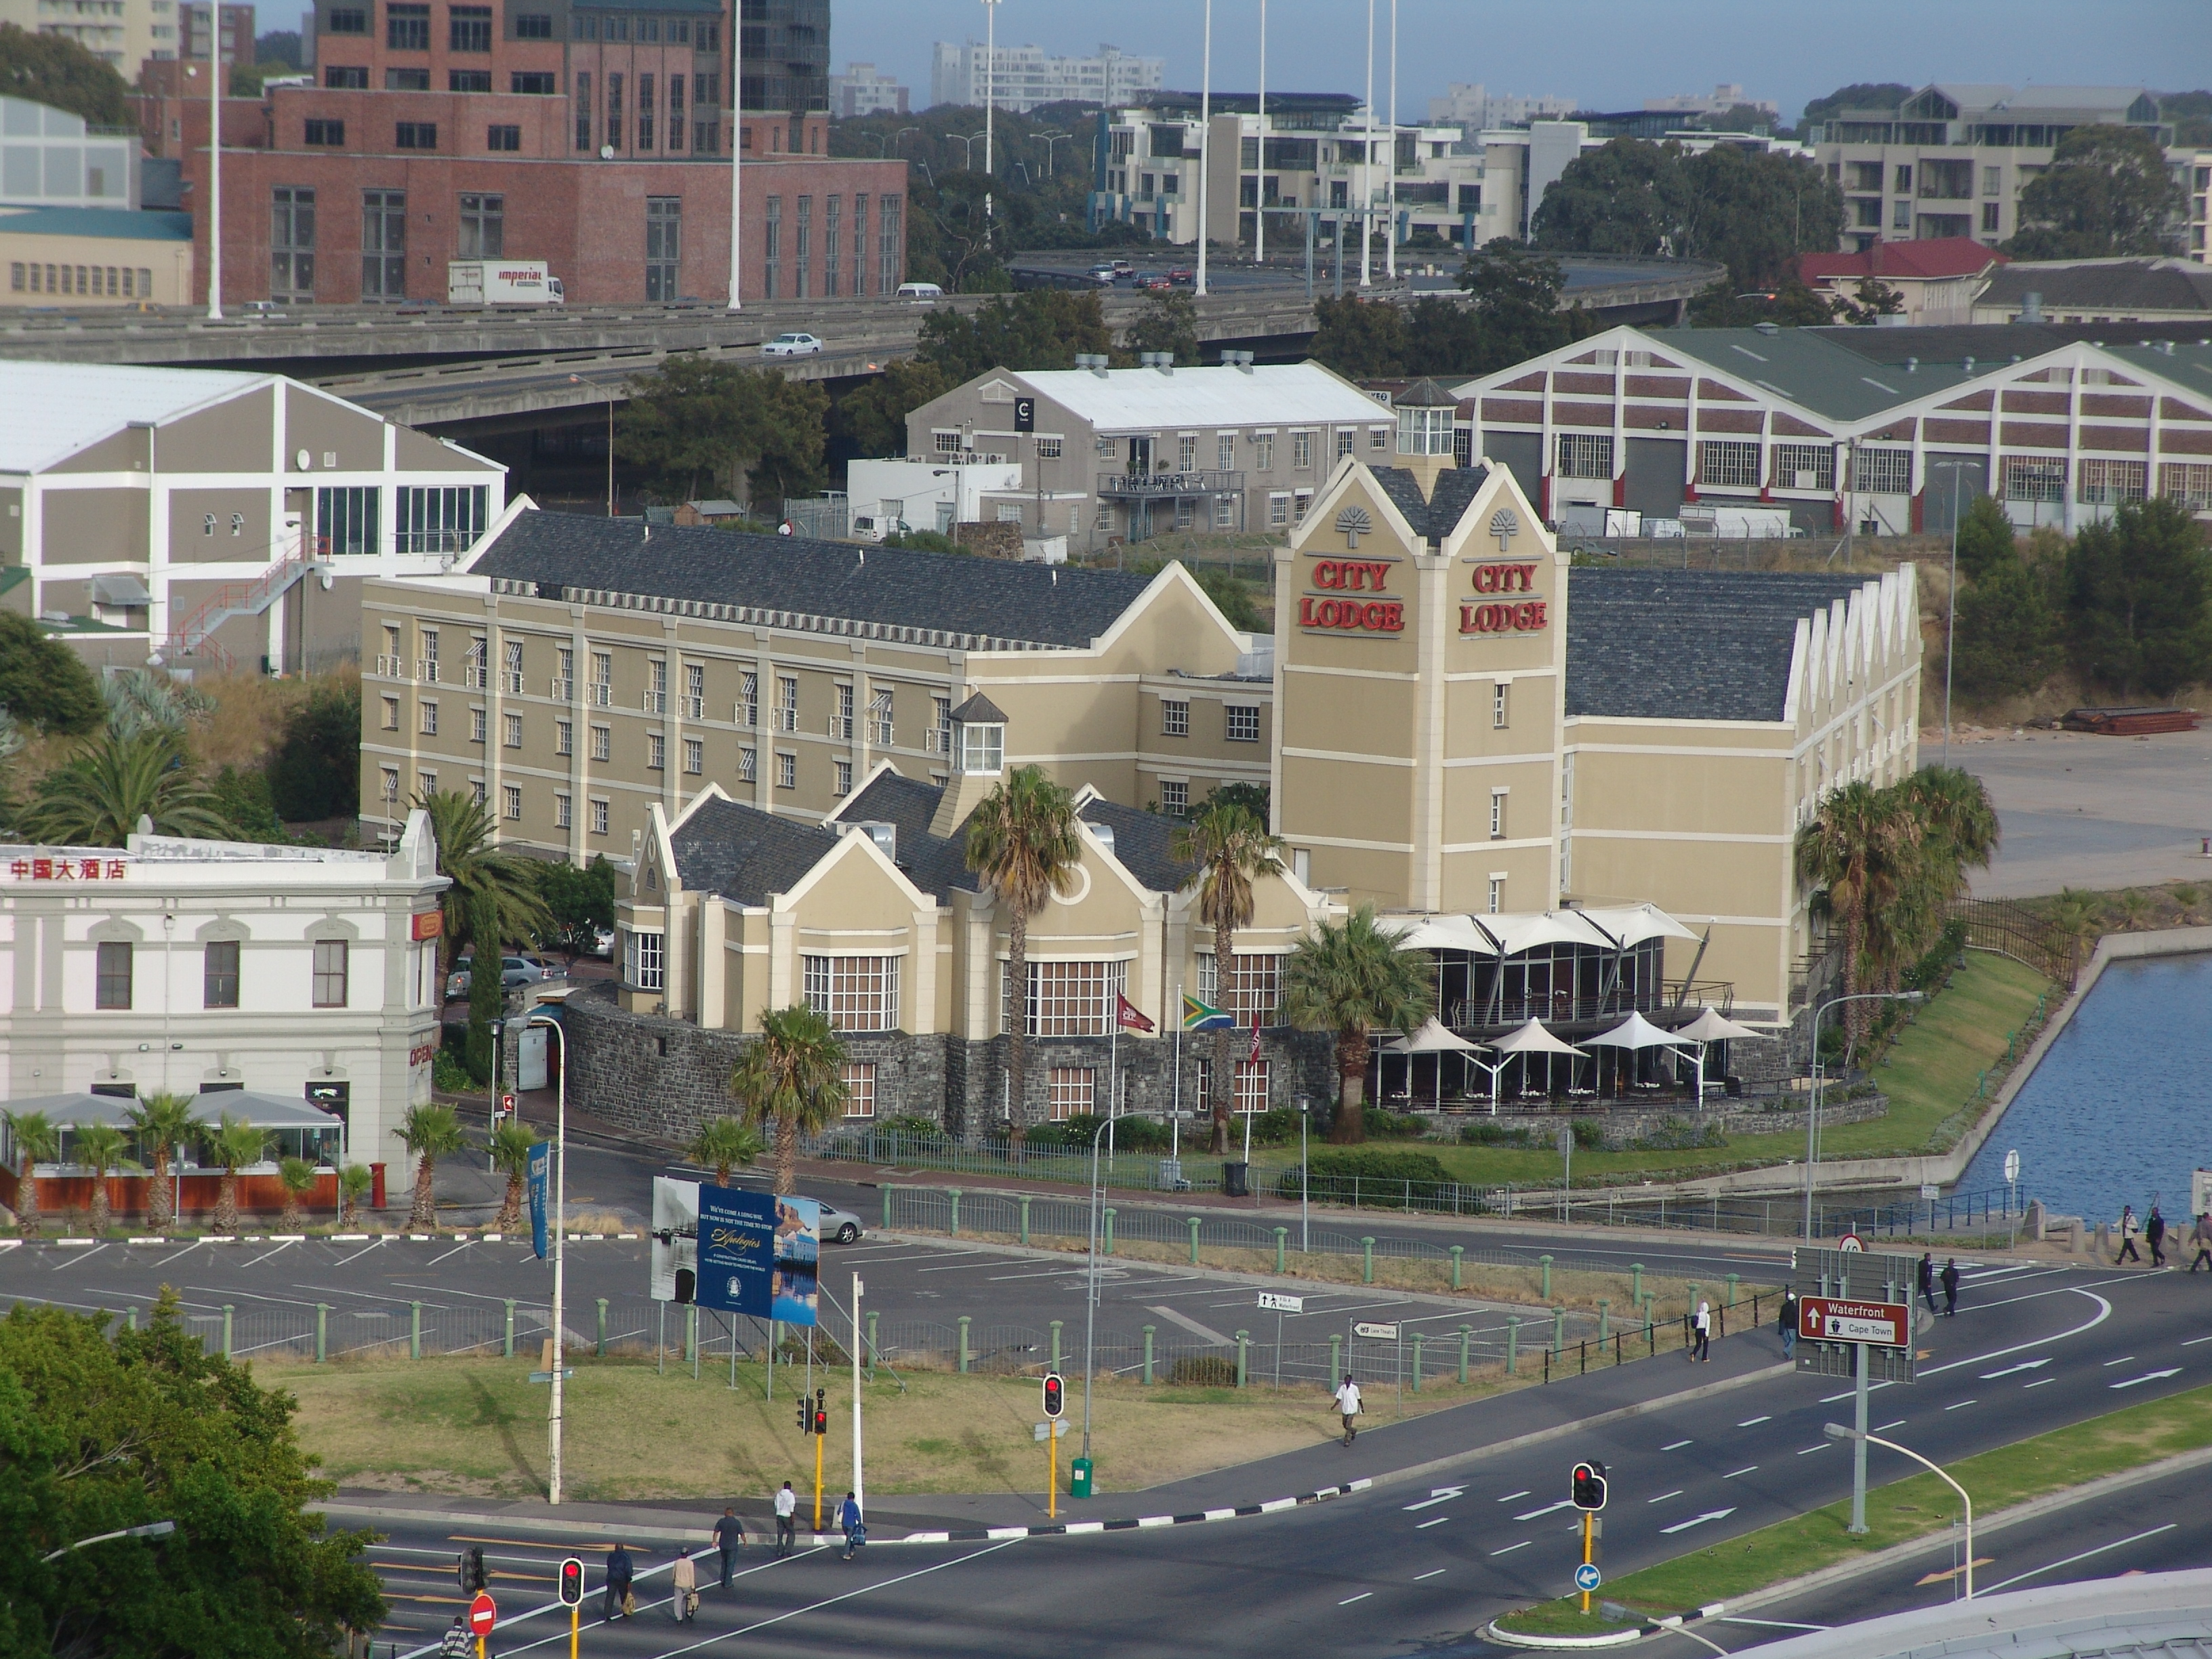 City Lodge Hotel Victoria And Alfred Waterfront Cape Town